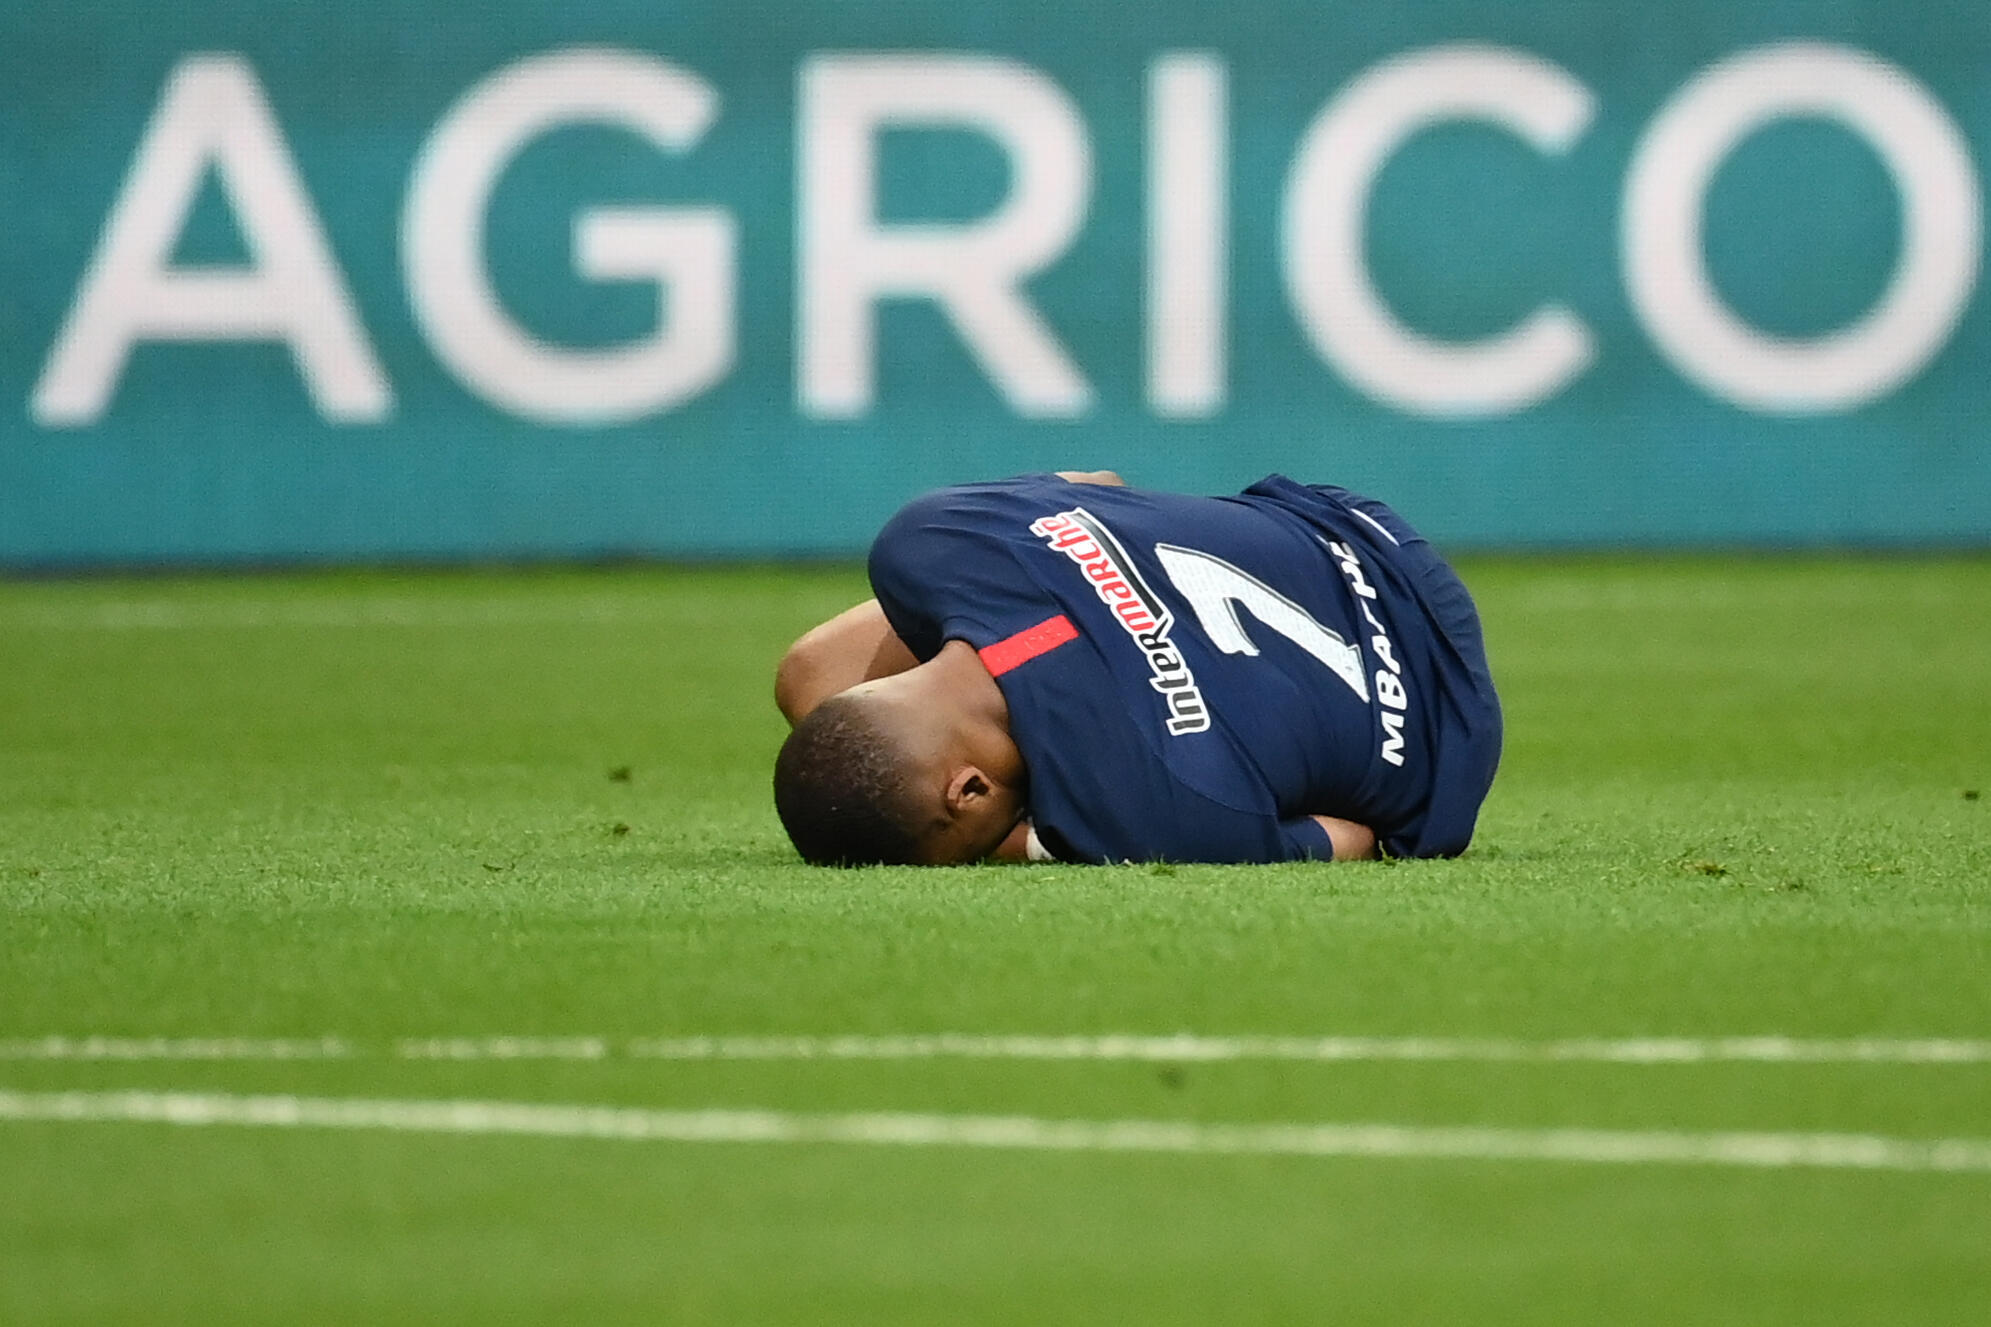 Kylian Mbappe was forced off after a clumsy tackle by Saint-Etienne defender Loic Perrin